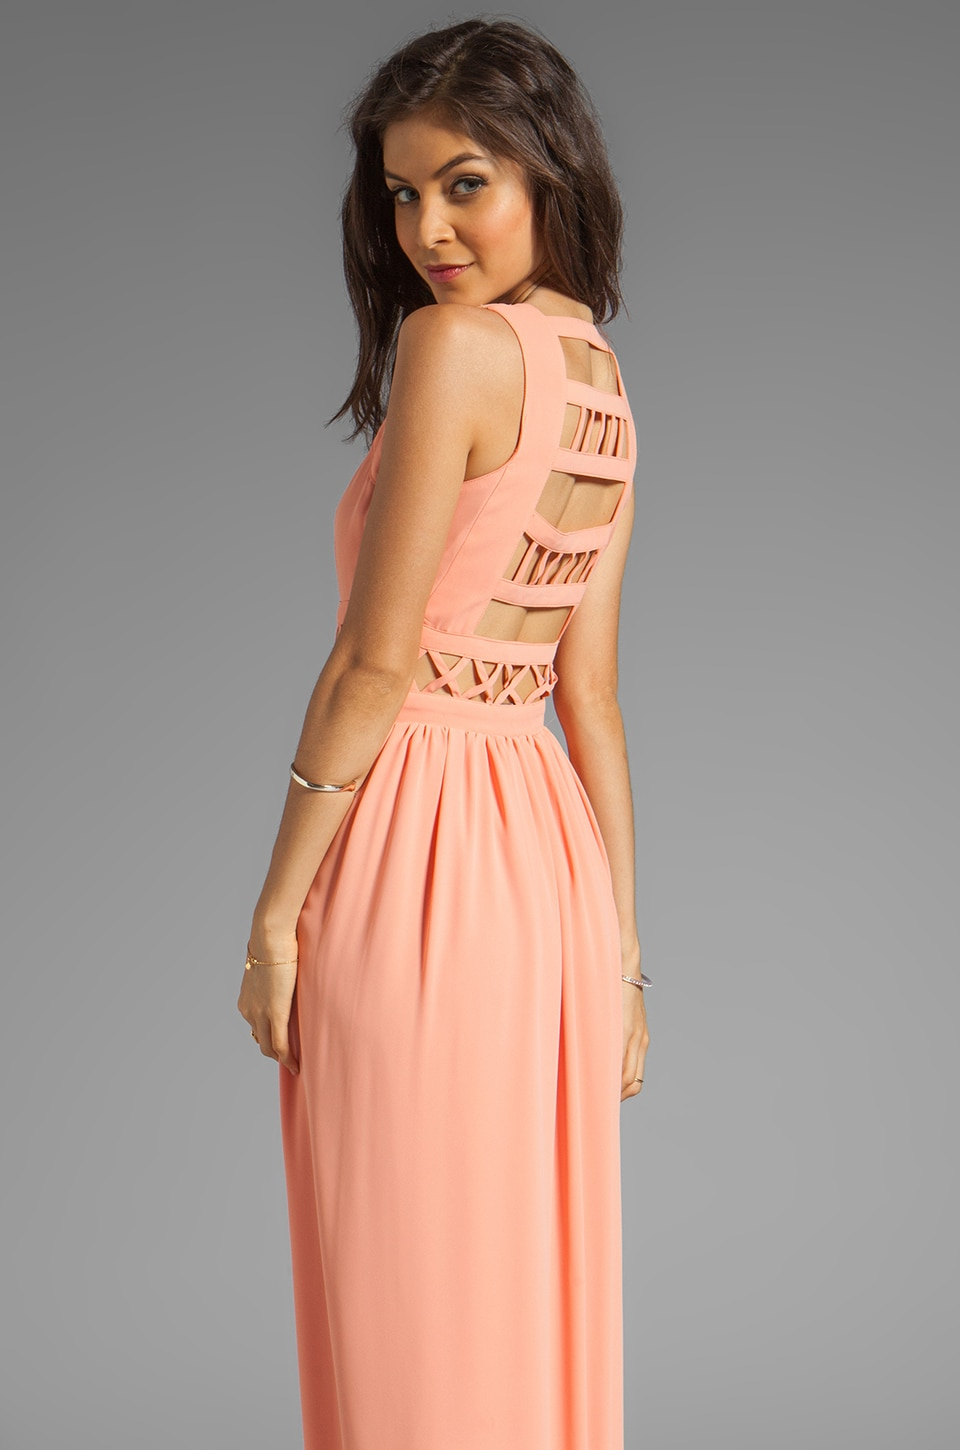 Lovers + Friends Calling You Maxi Dress in Coral